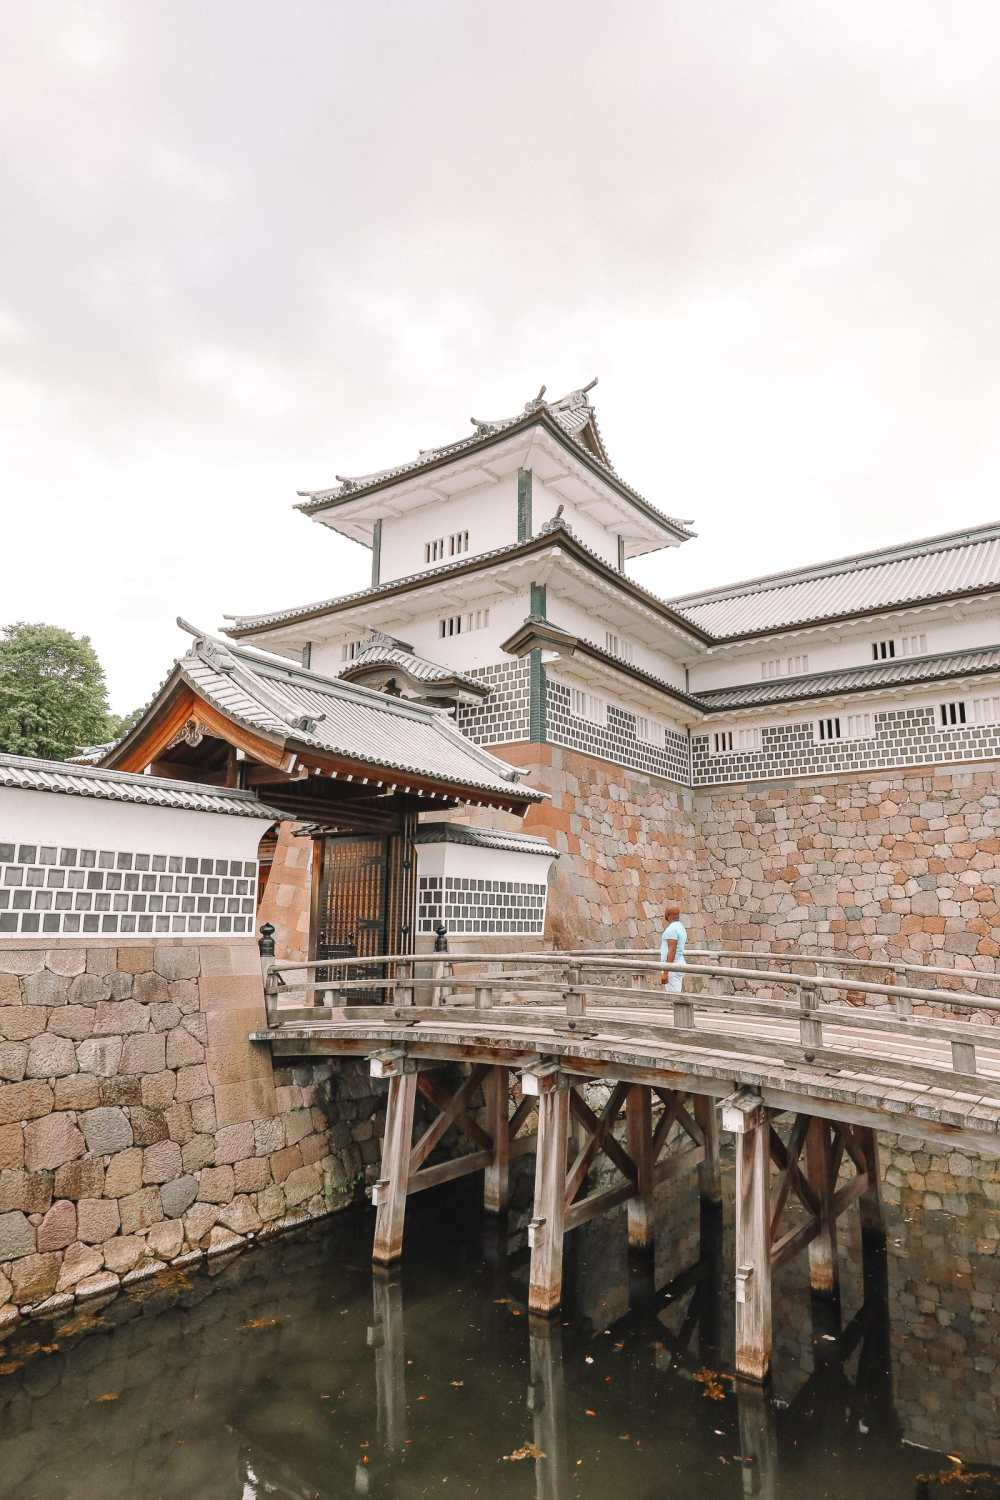 Exploring The Historic City Of Kanazawa - Japan (23)